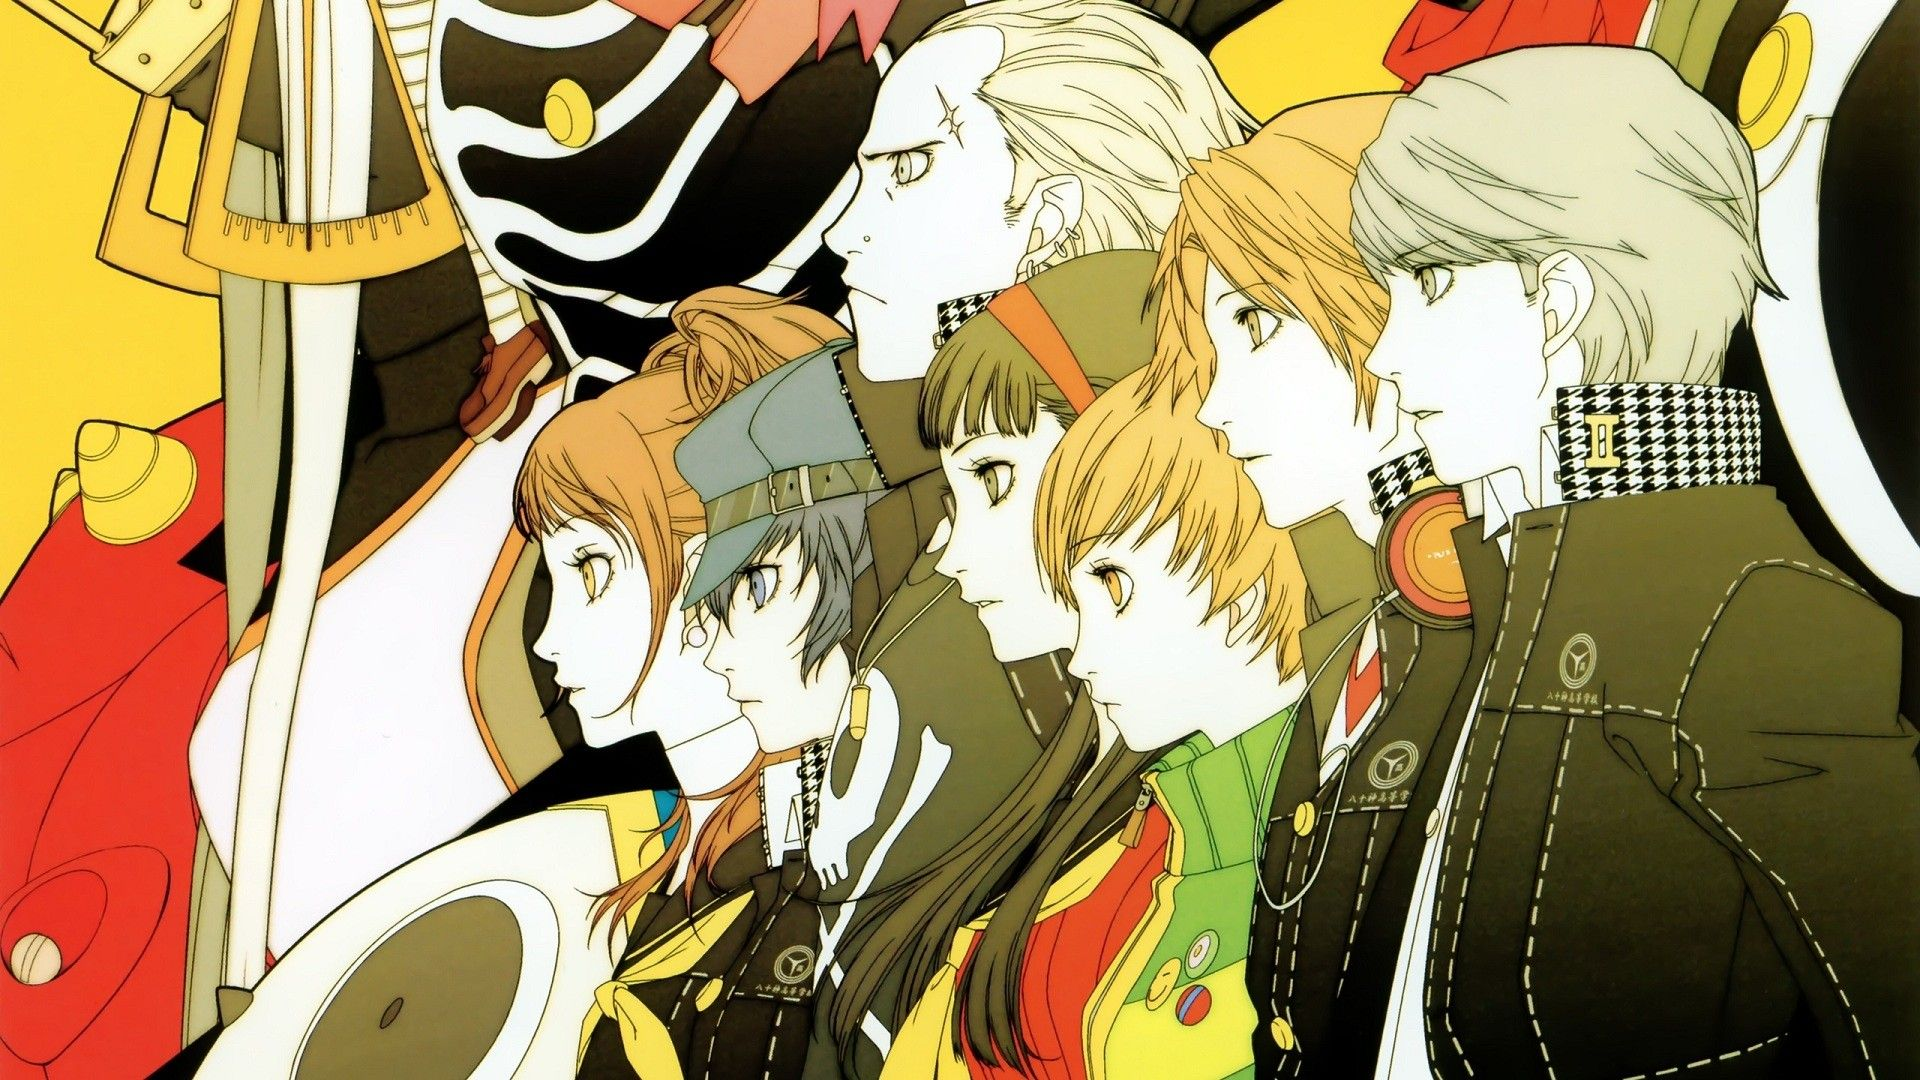 """Games That Changed Our Lives: 'Persona 4', Self-Acceptance and the """"Truth"""""""